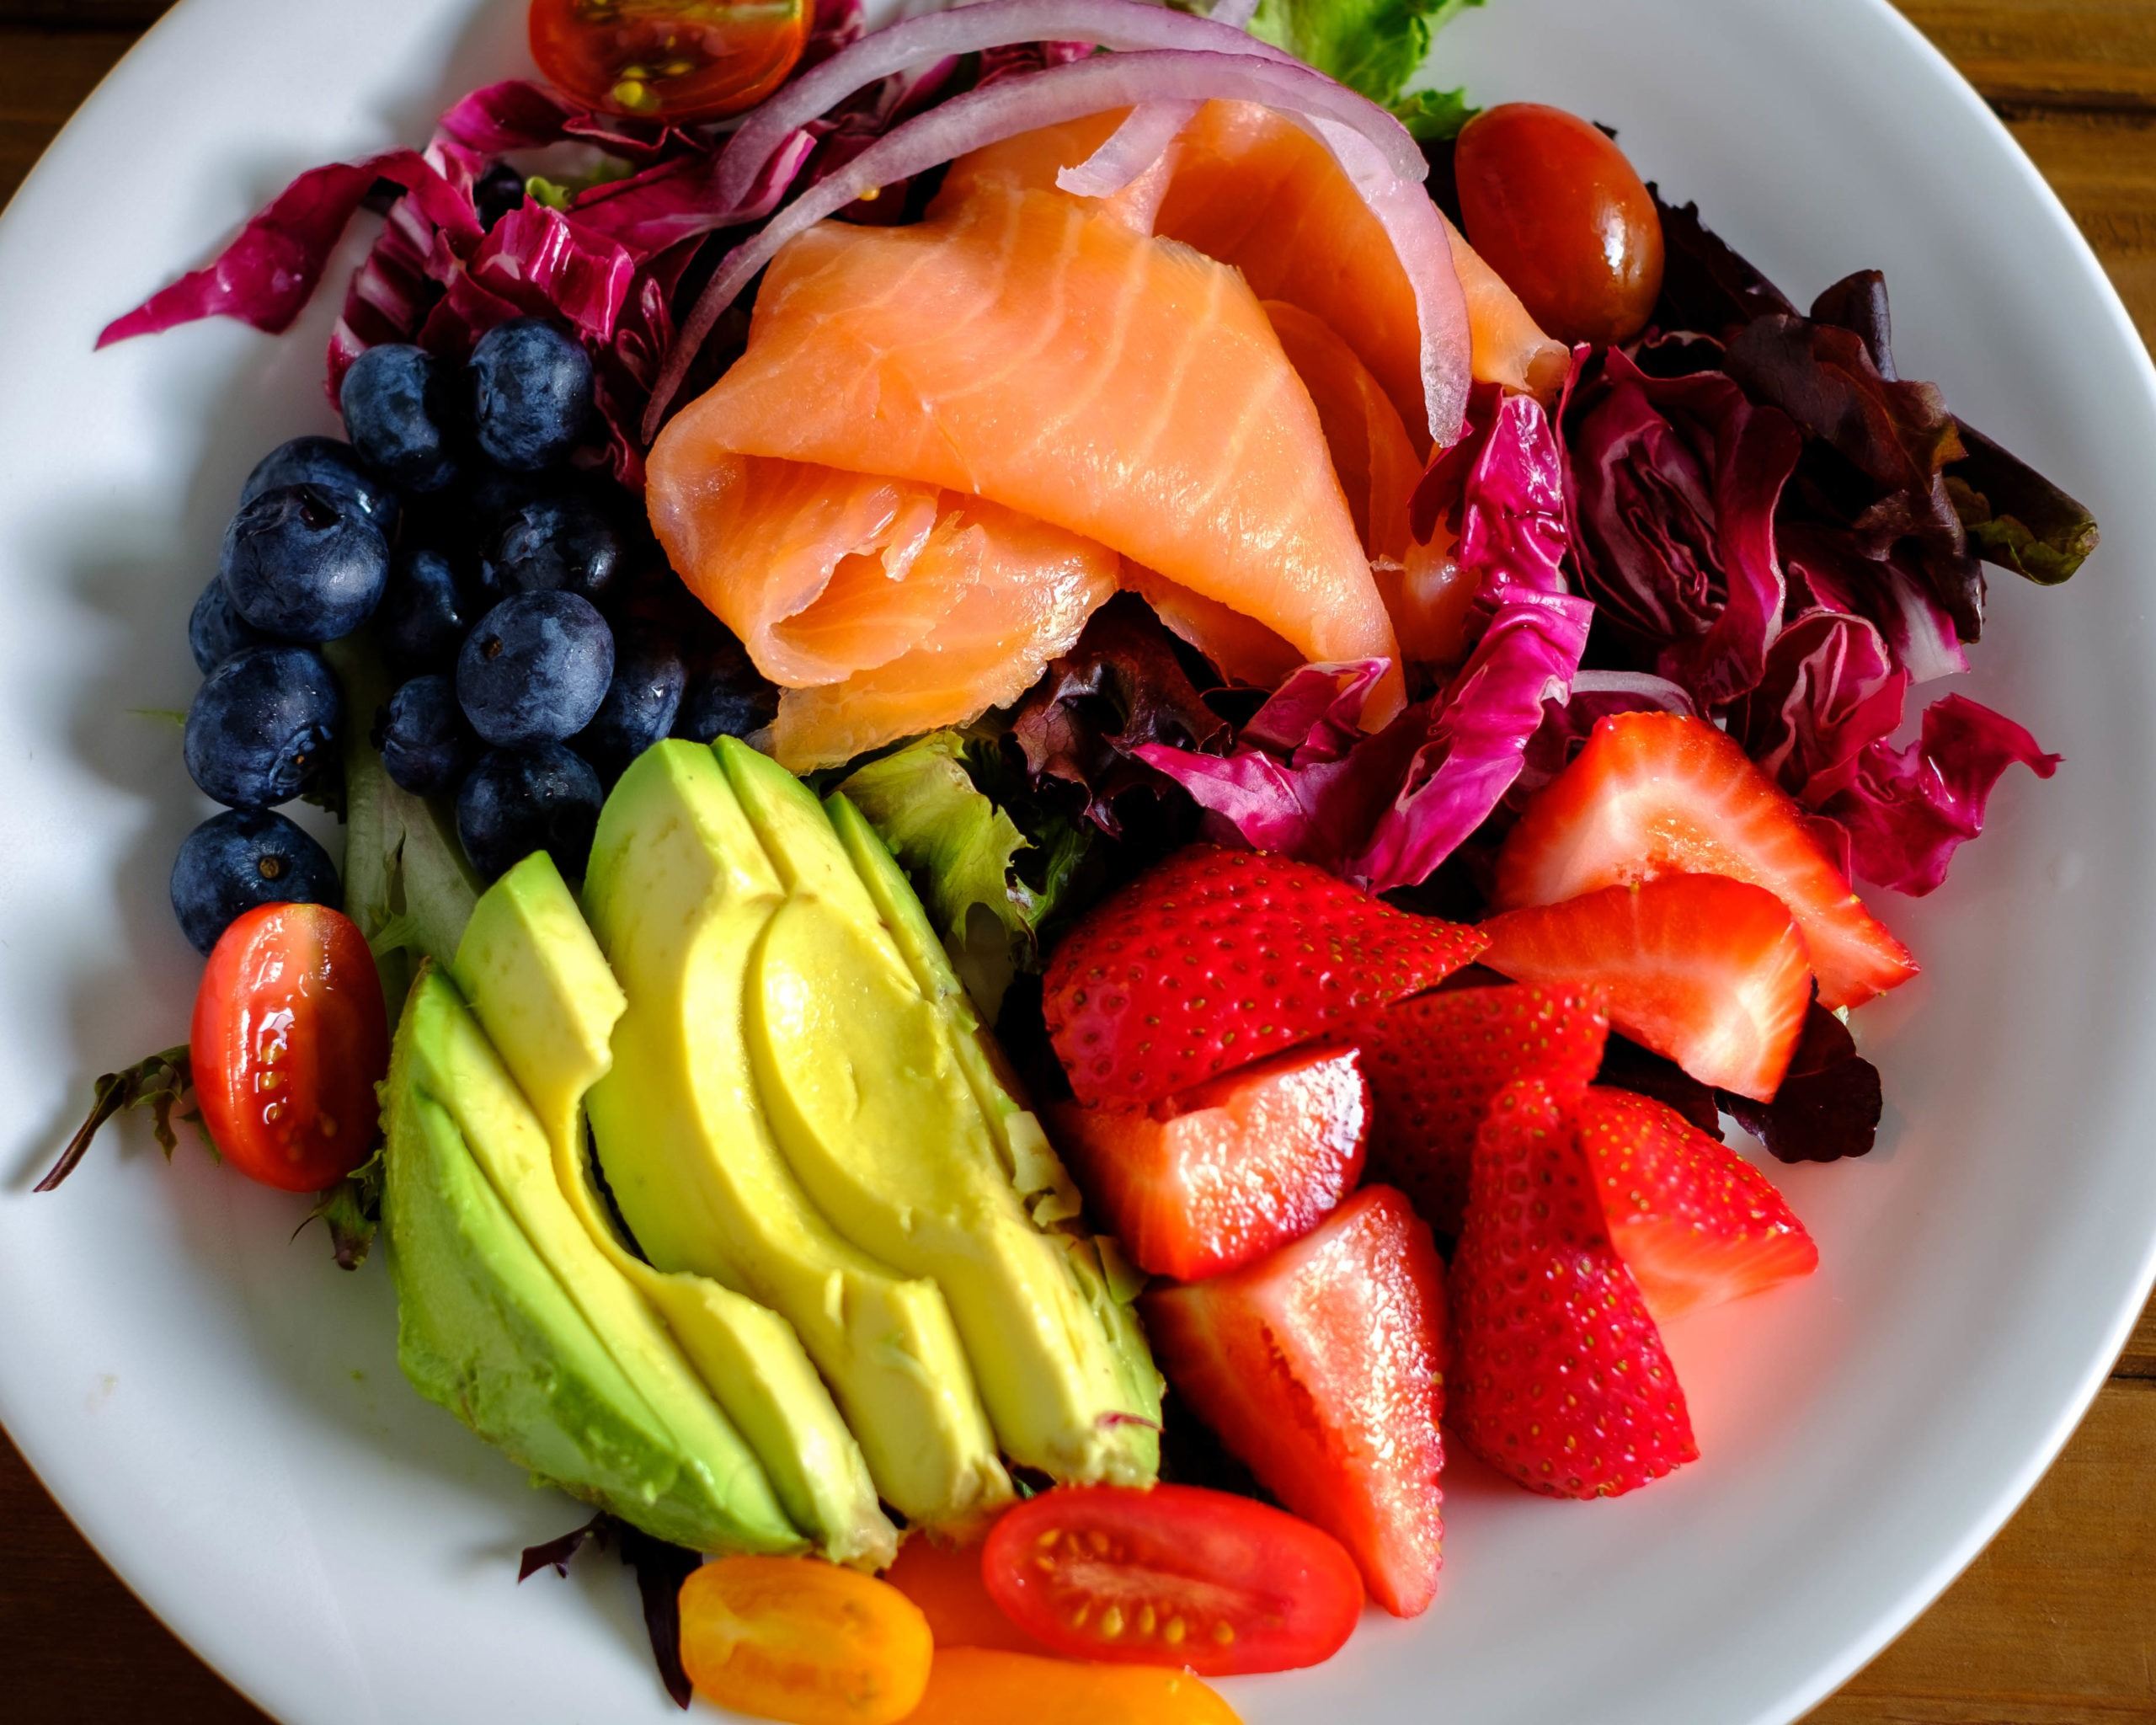 Smoked Salmon and Fruit Salad